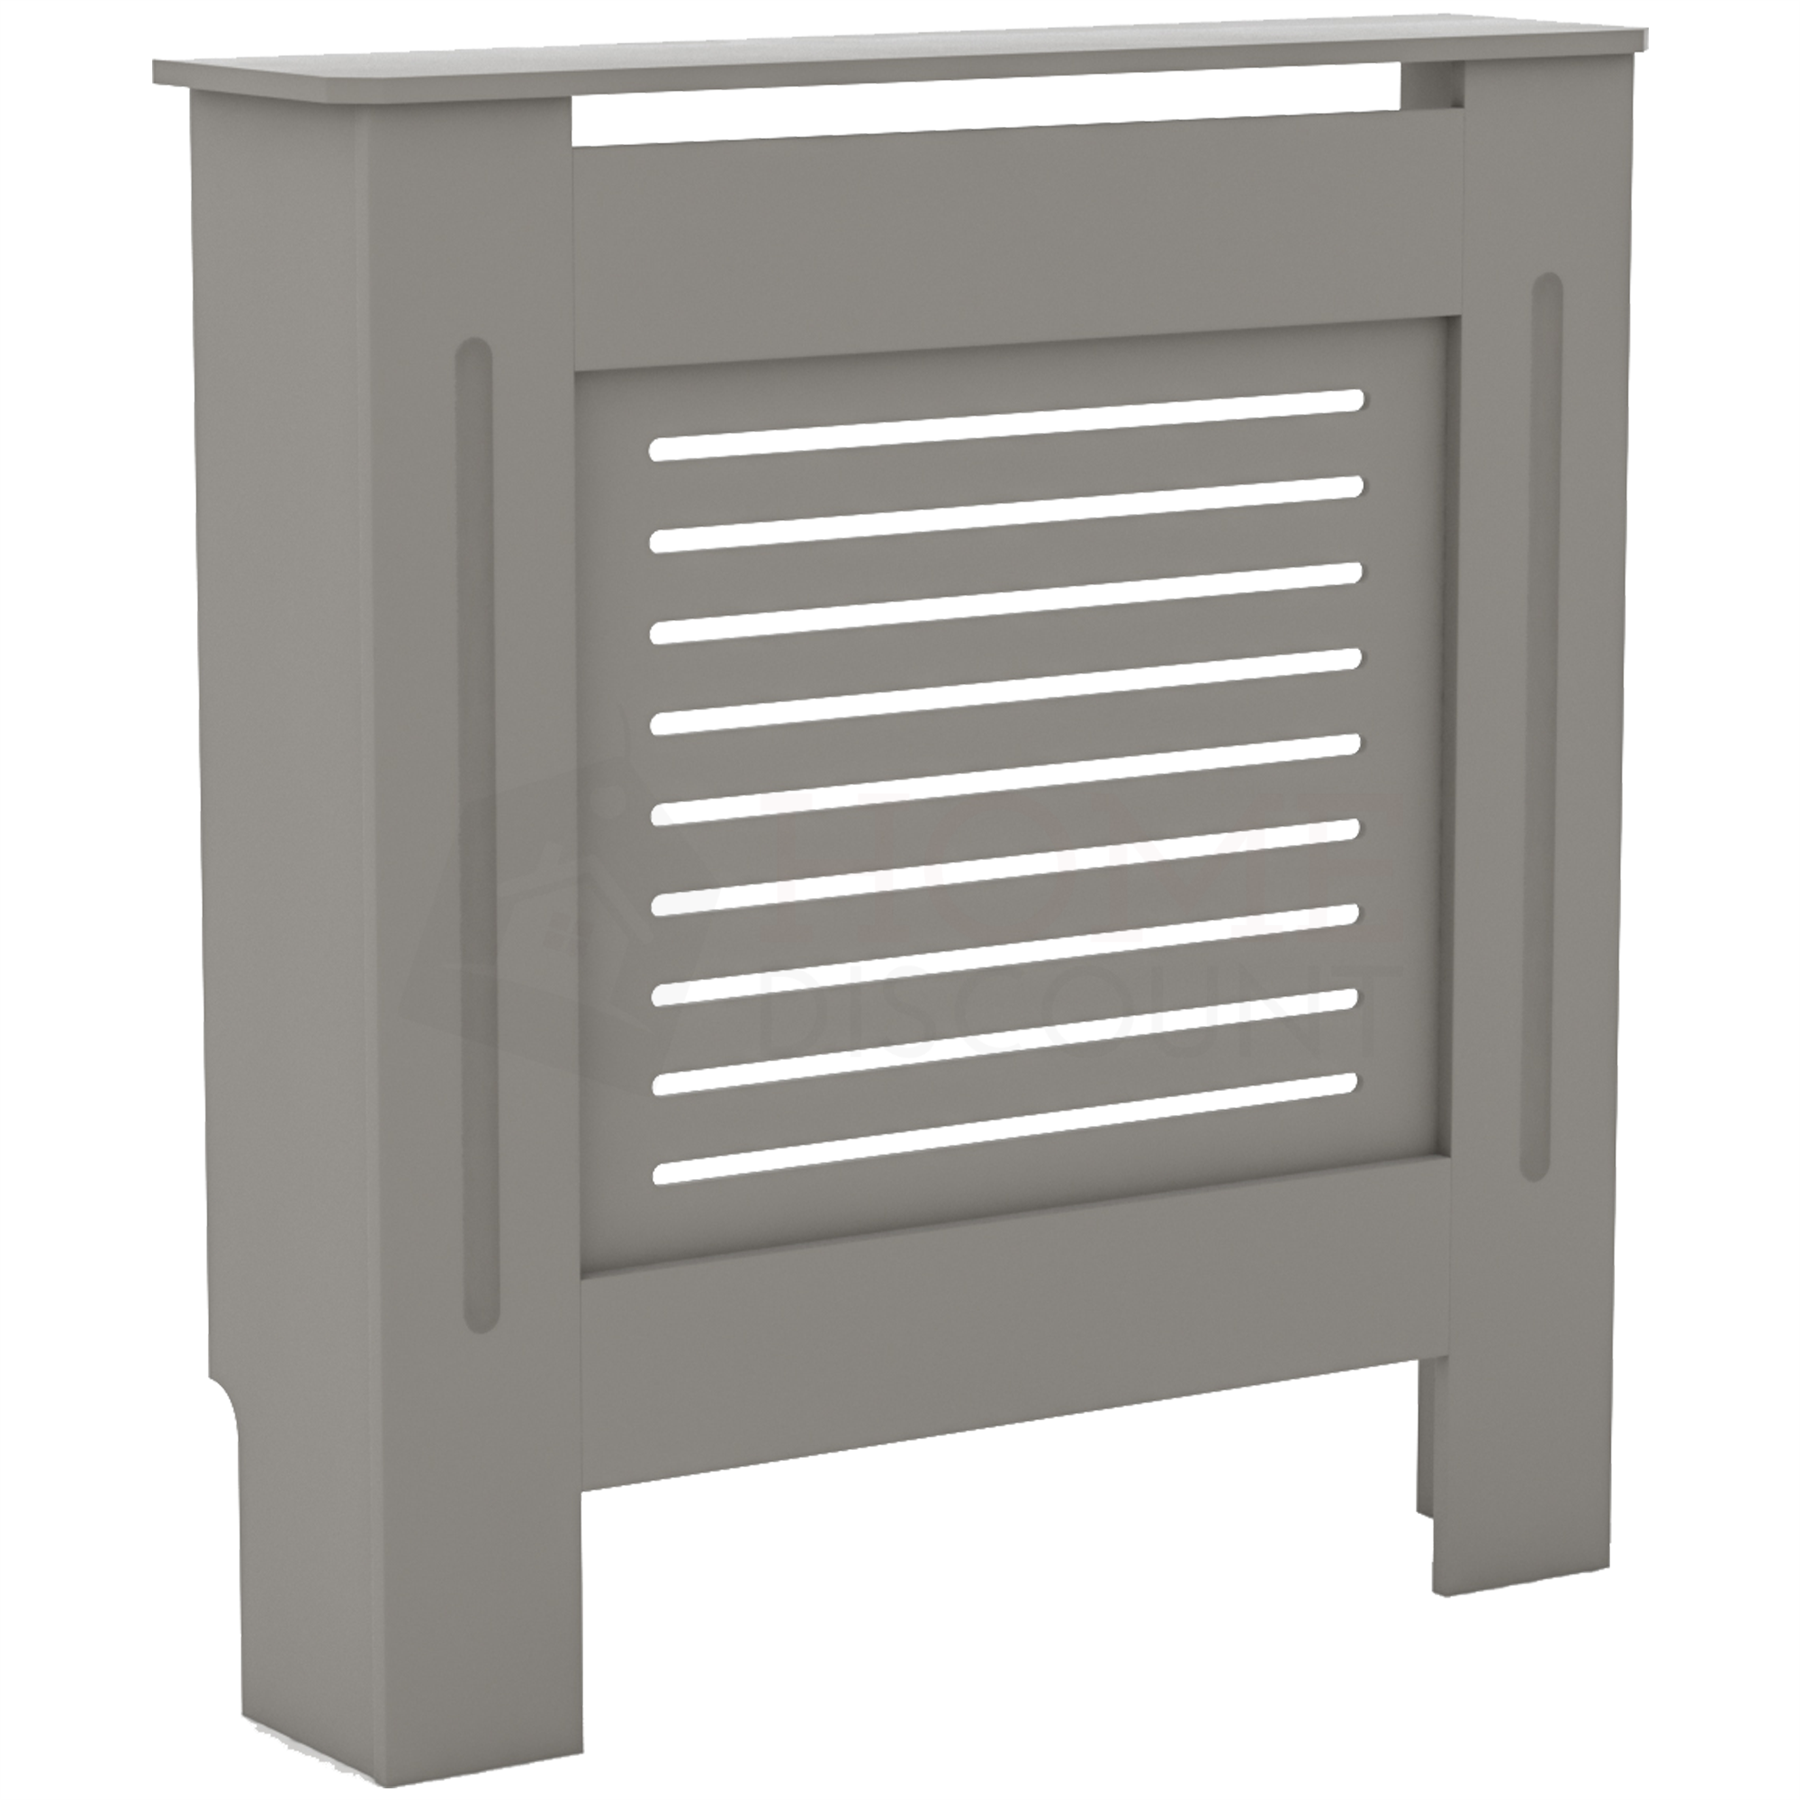 Radiateur-Housse-Blanc-inachevee-MODERNE-BOIS-TRADITIONNELLE-Grill-cabinet-furniture miniature 113